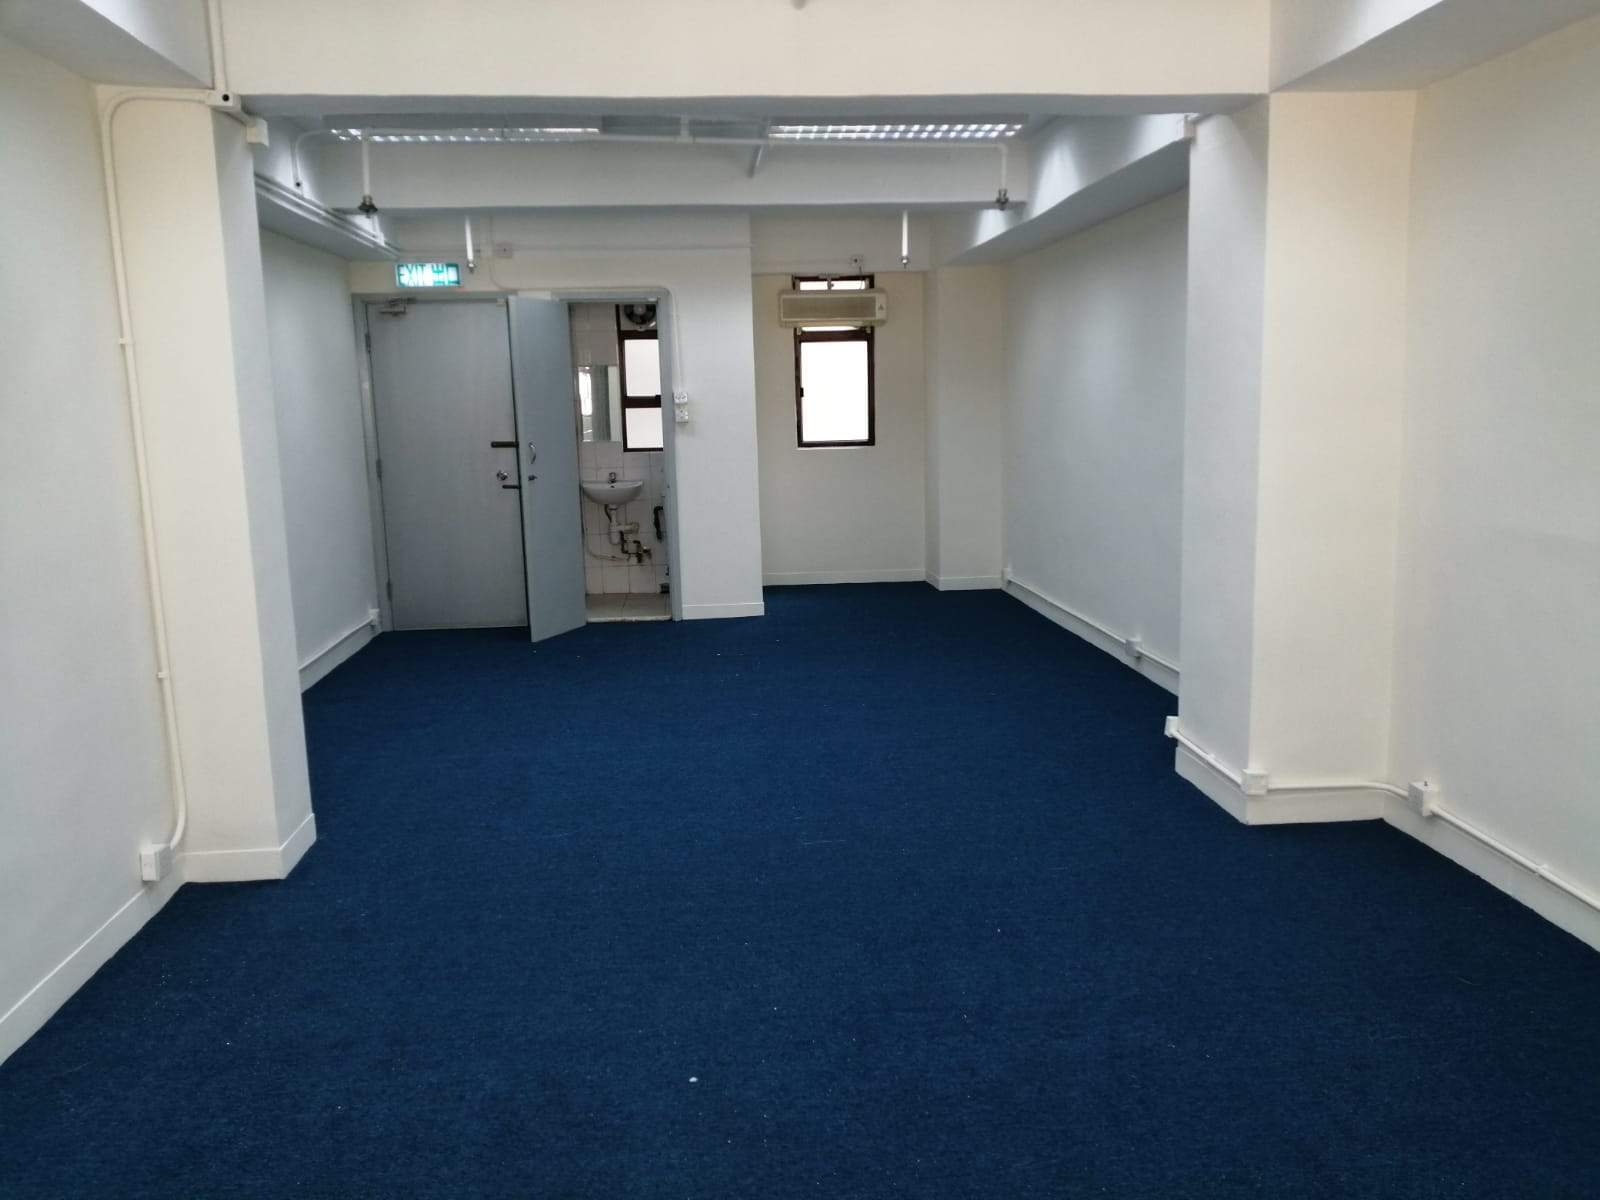 【Leased】Middle level, Yue's House, Sheung Wan